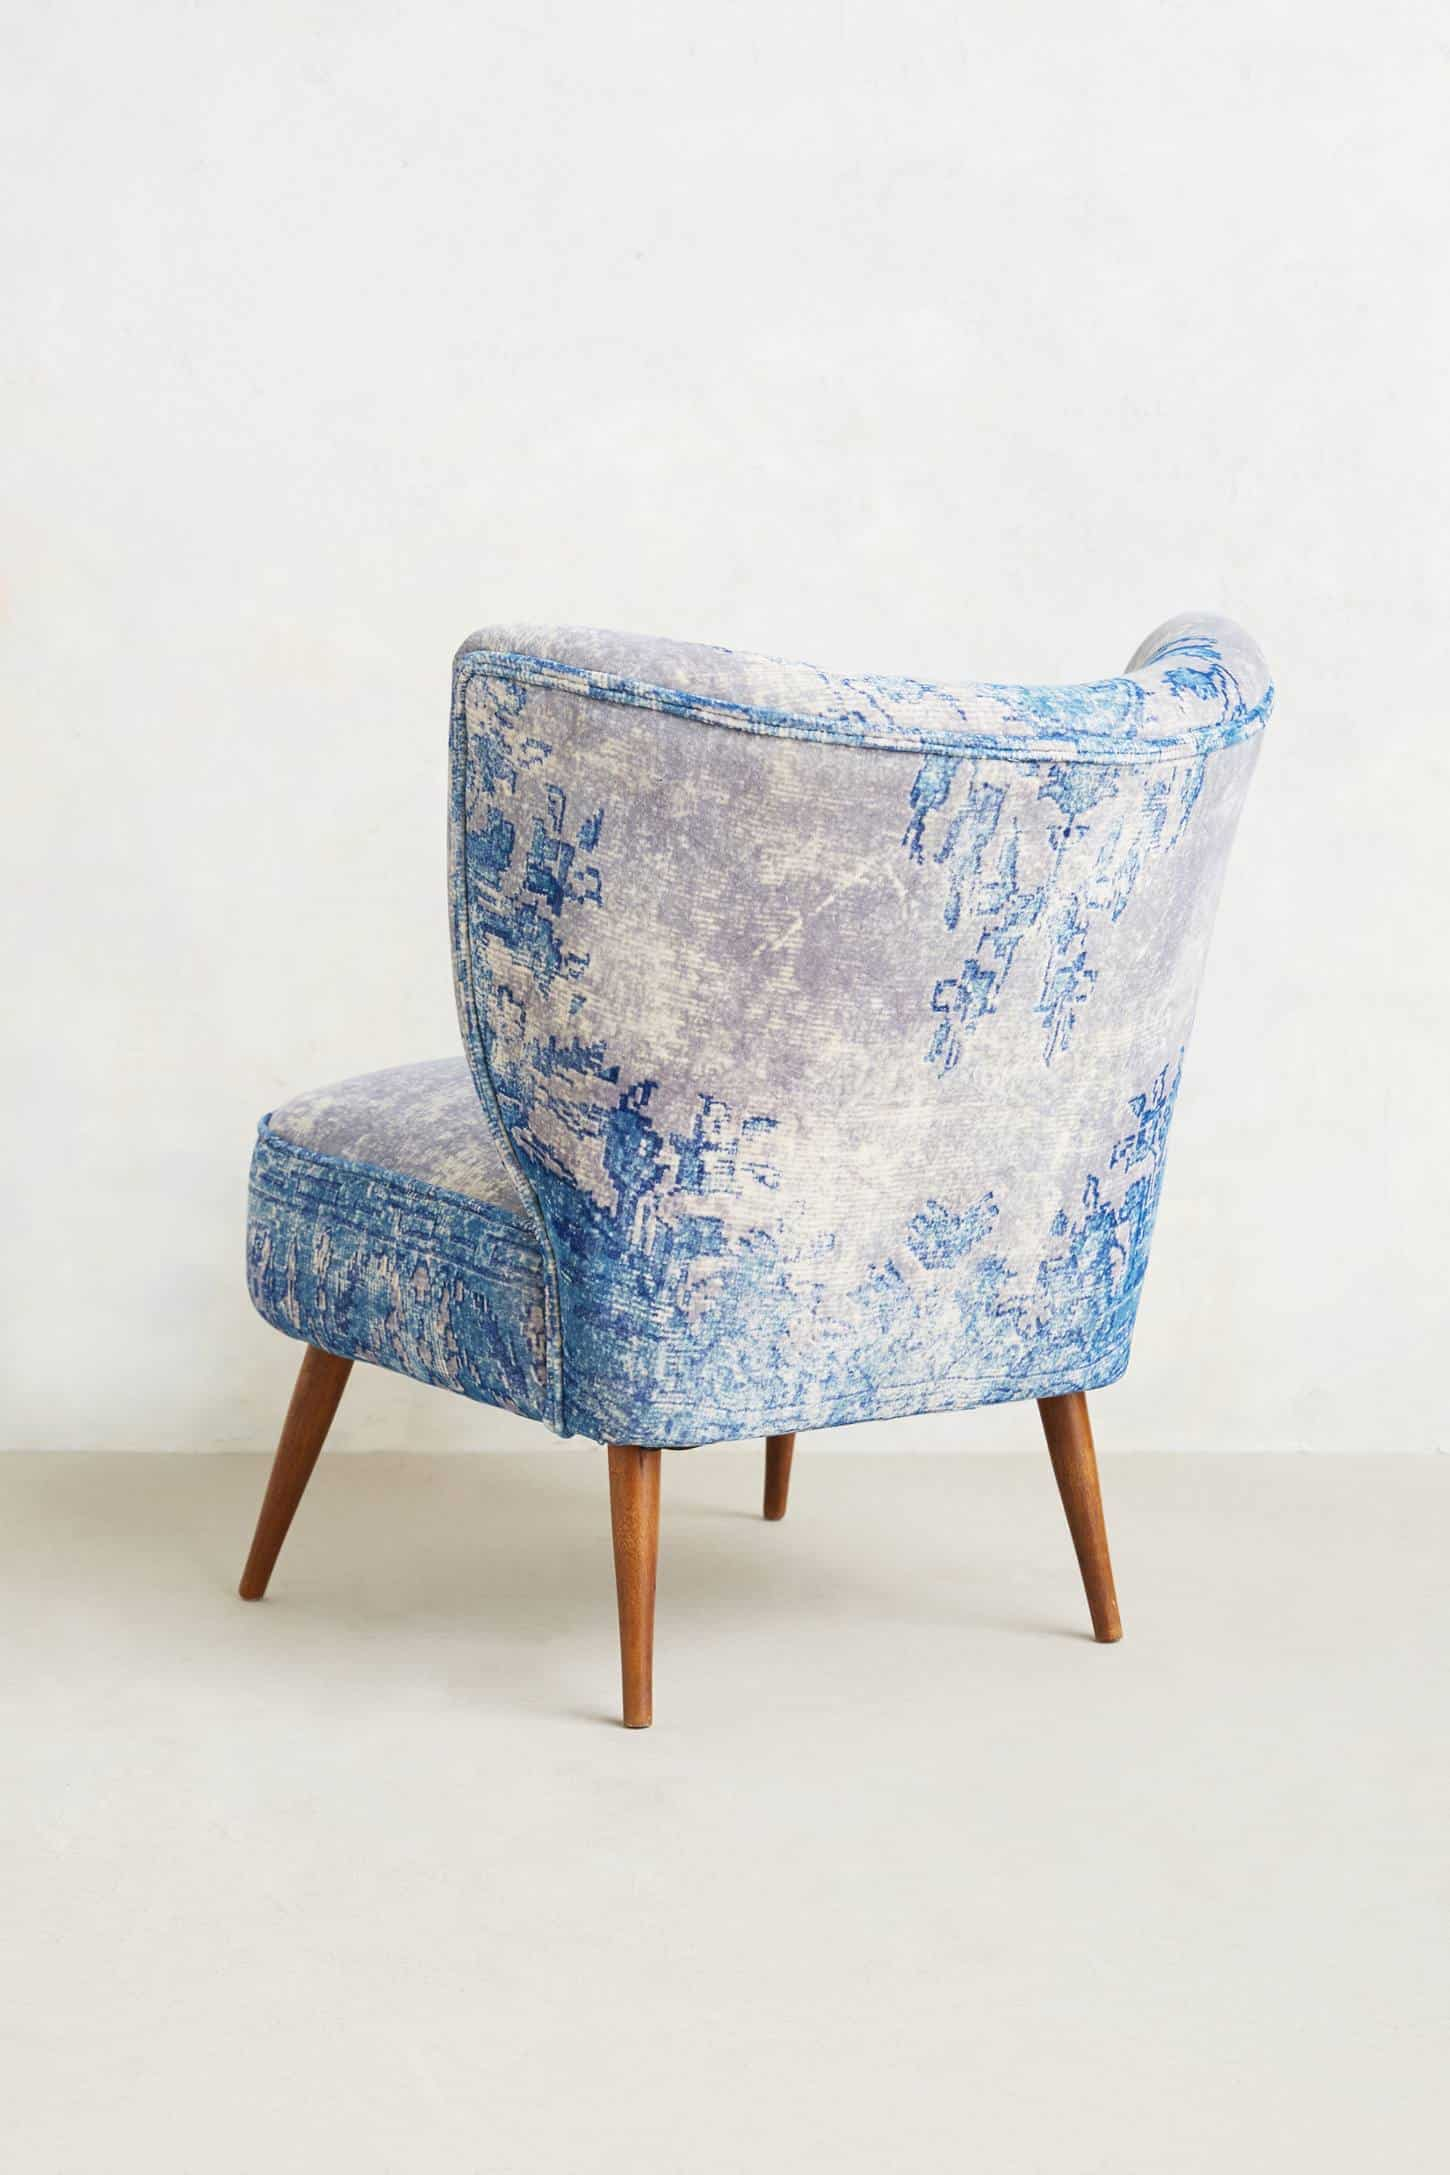 View In Gallery Moresque Occasional Chairs Anthropologie 5